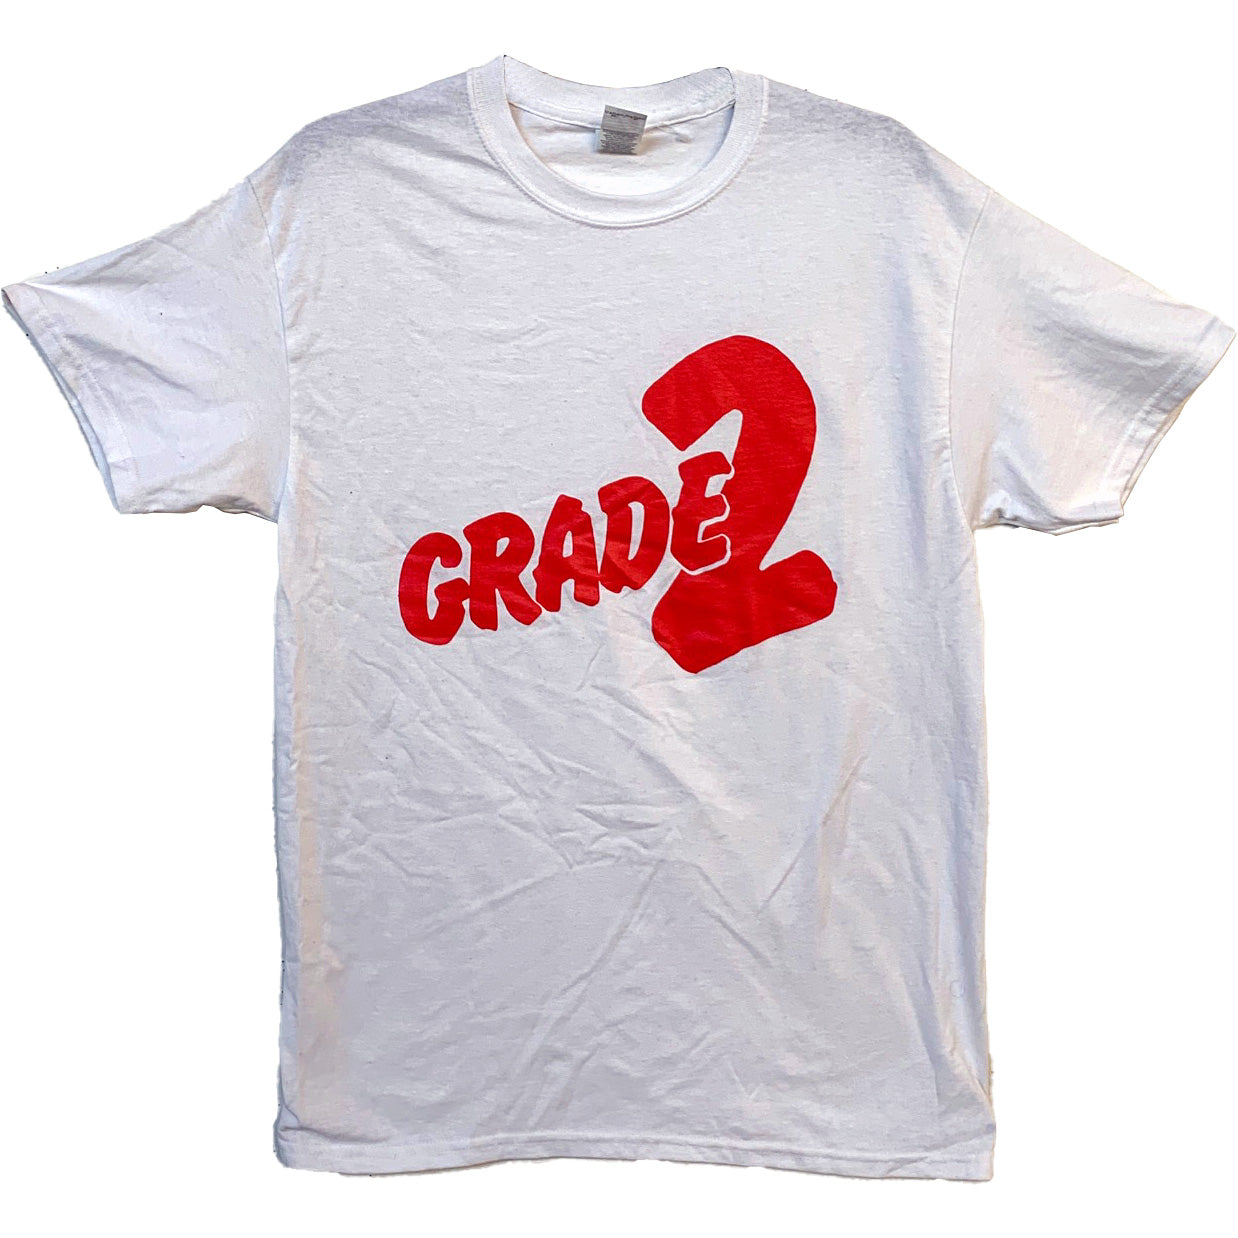 Grade 2 - Red Logo - White - T-Shirt